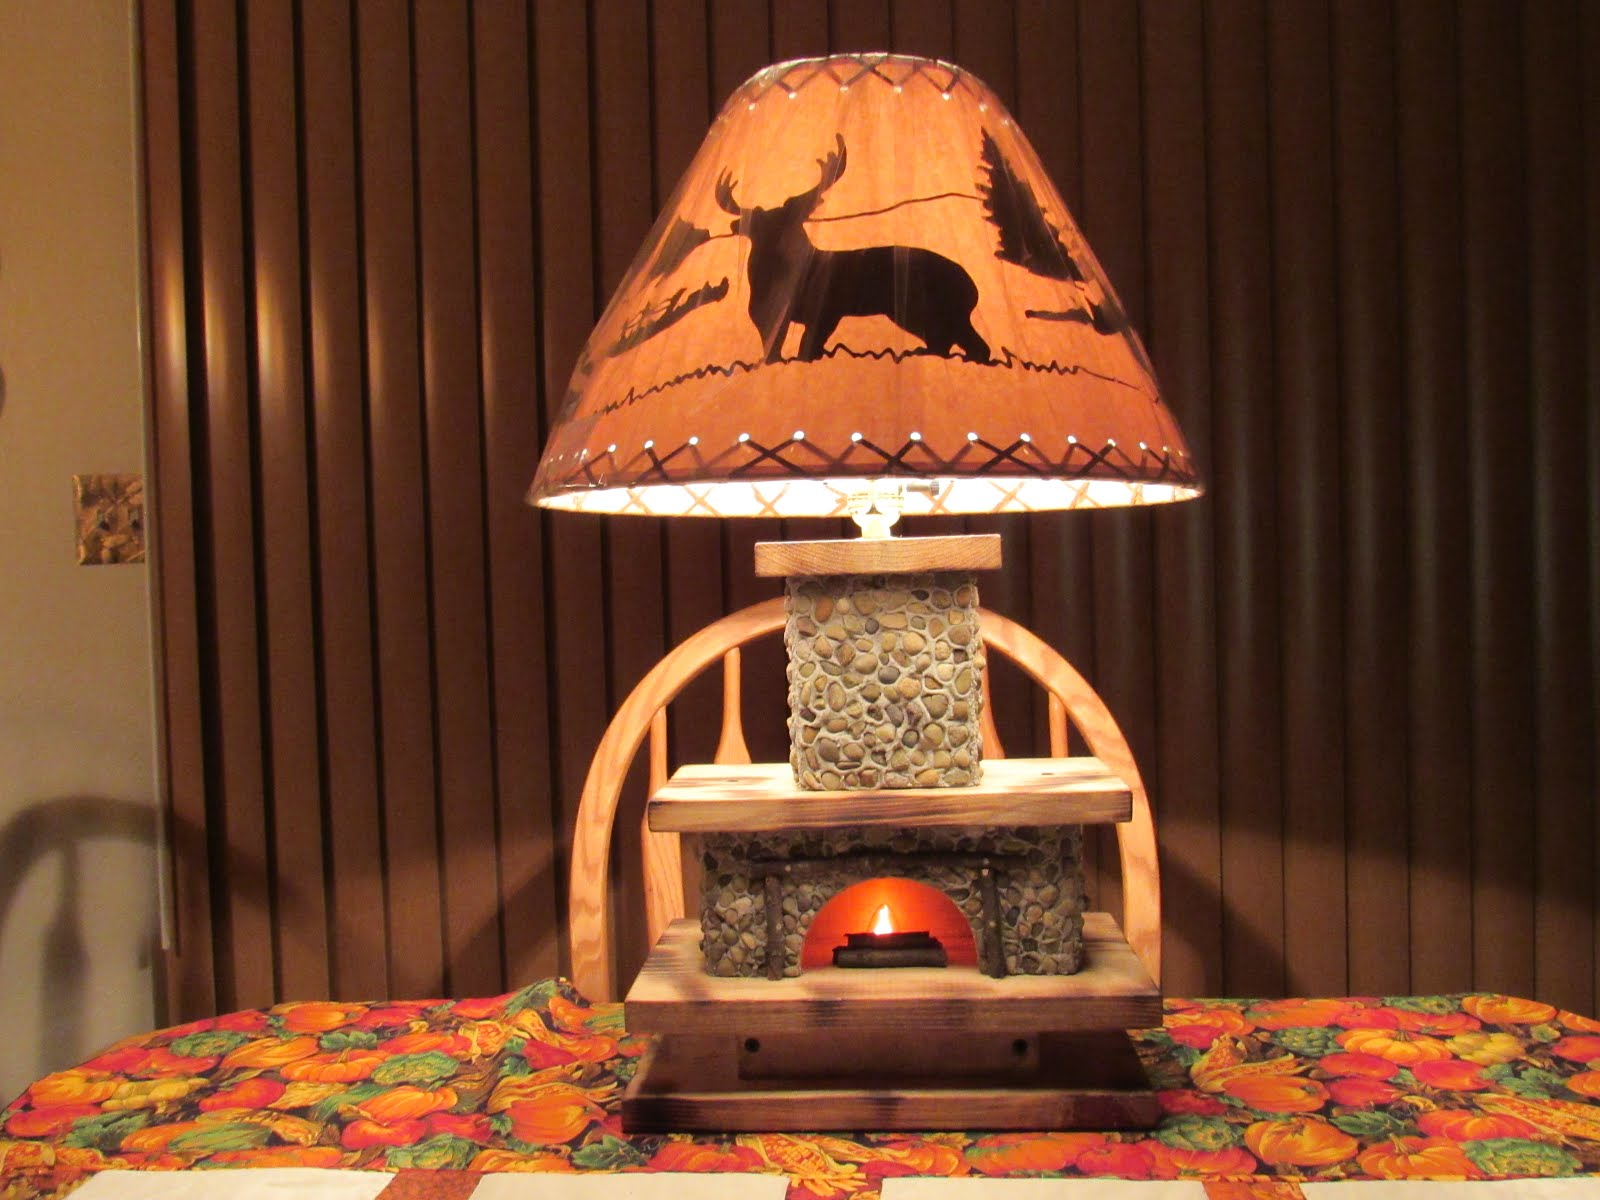 Hearthwood Lamps - Handcrafted by Bernie and Debbie